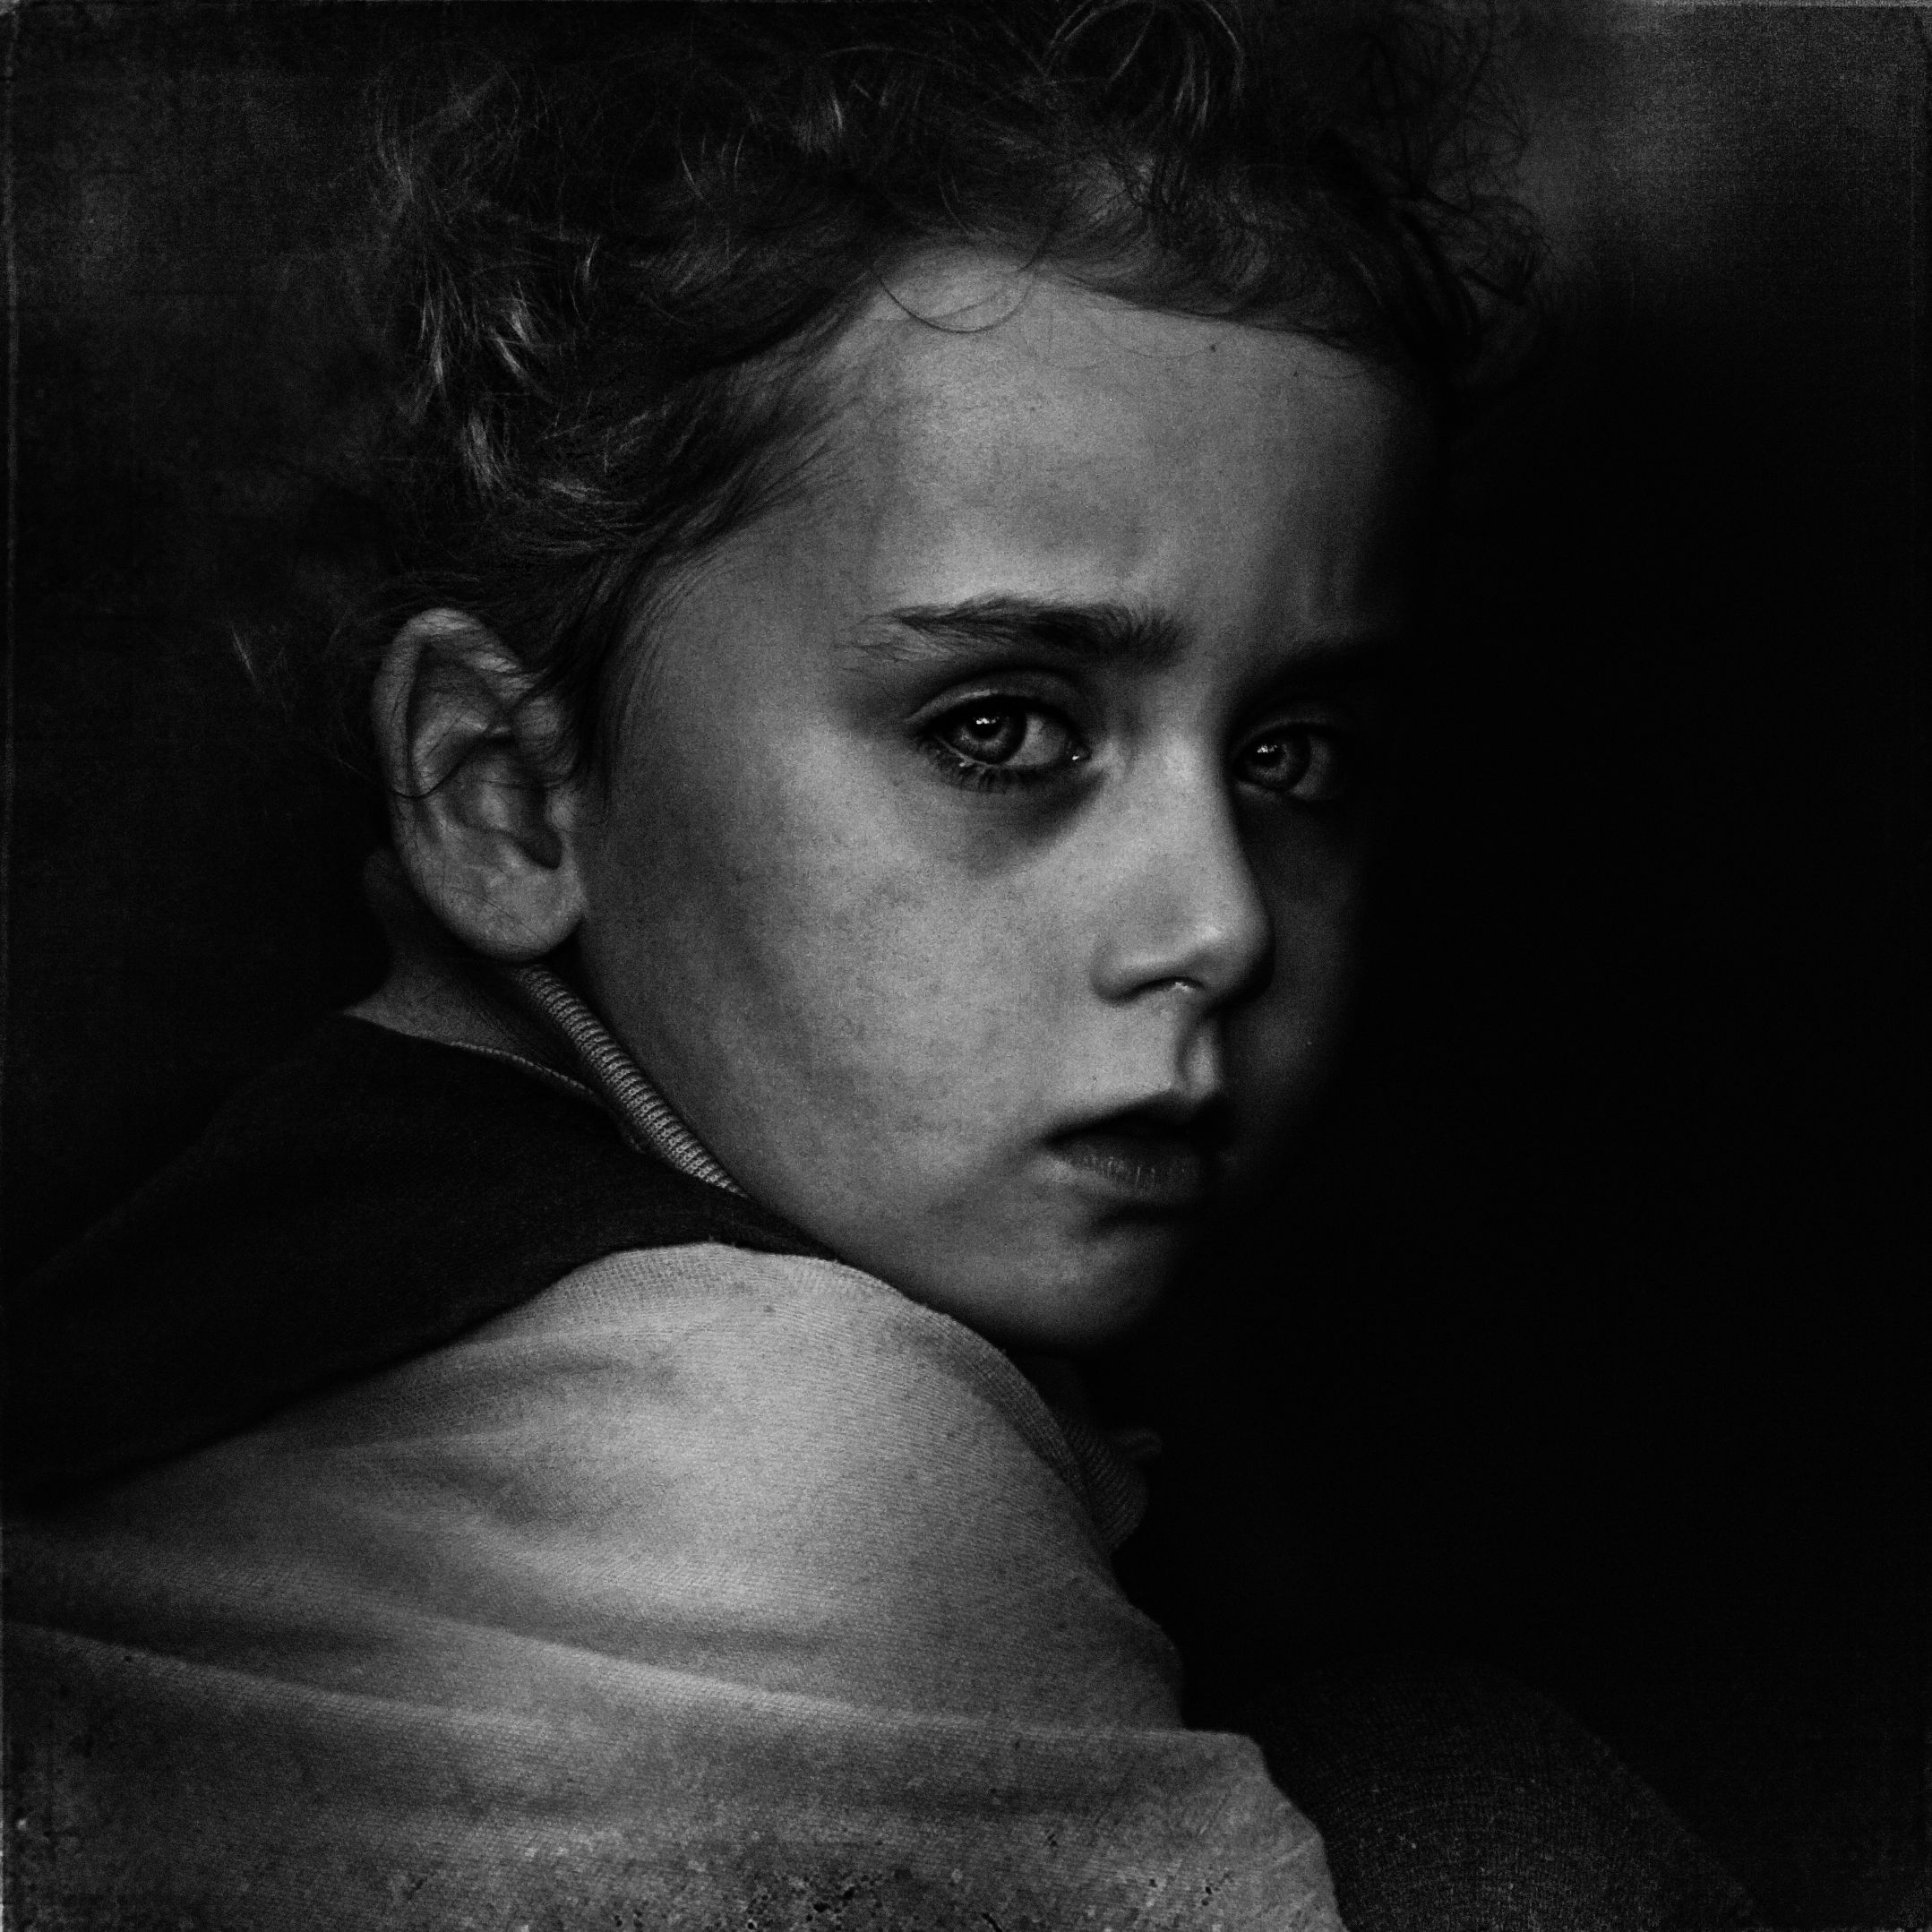 Homeless People Portraits Photography By Lee Jeffries: From Lee Jeffries' Portraits Of The Homeless.